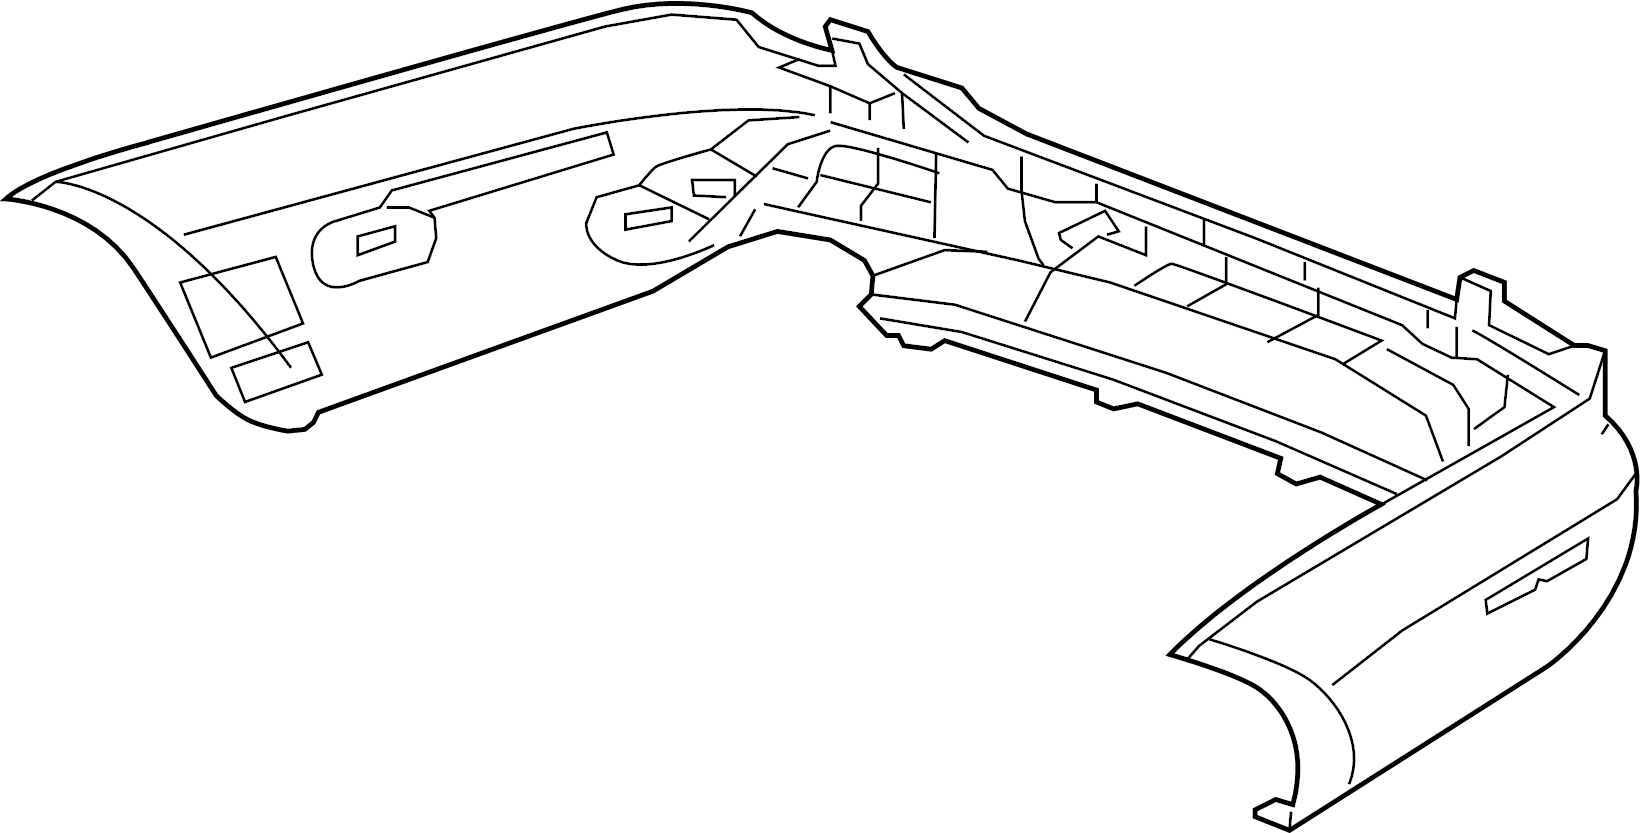 jaguar xjr body part diagram